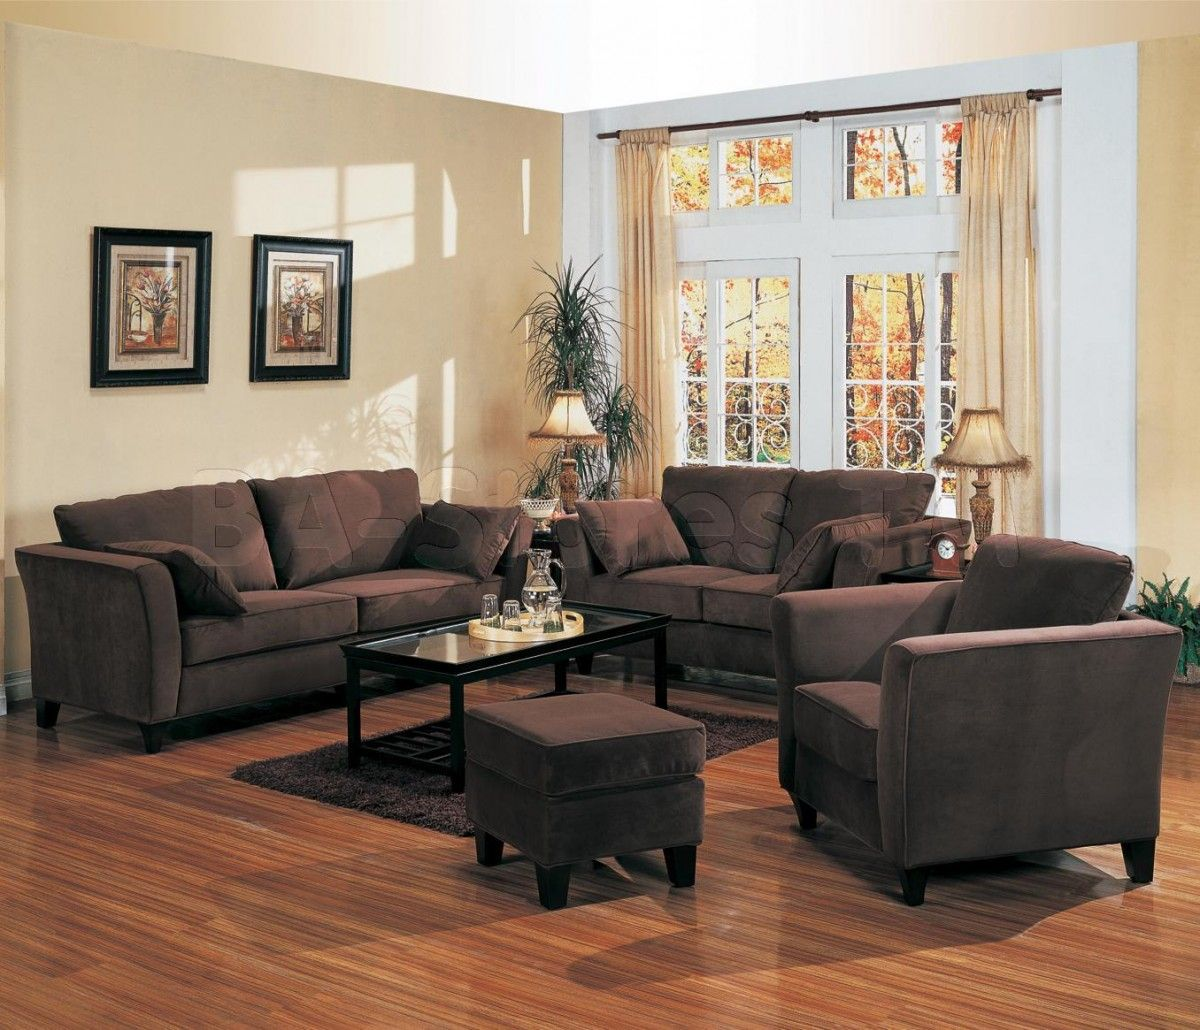 Coaster Contemporary Sofa Set Park Place   Coaster Contemporary Sofa Set  Park Place Description The Park Place .